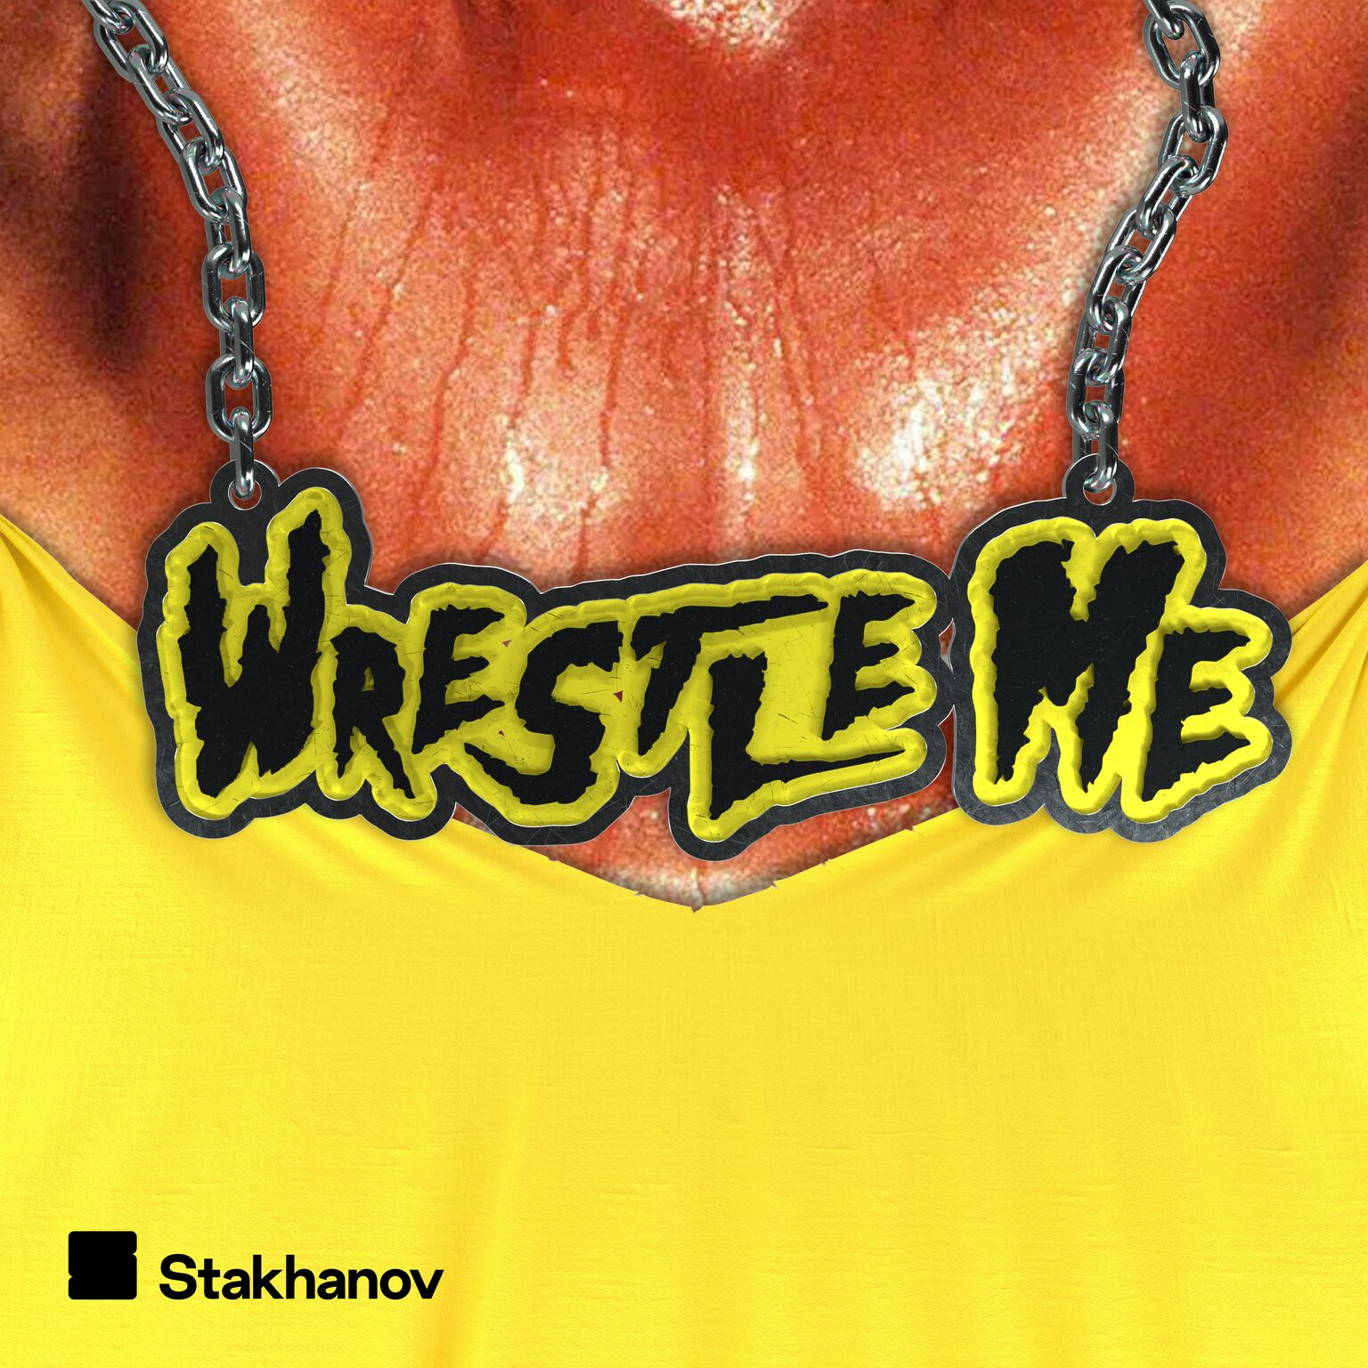 The artwork for the Wrestle Me podcast.